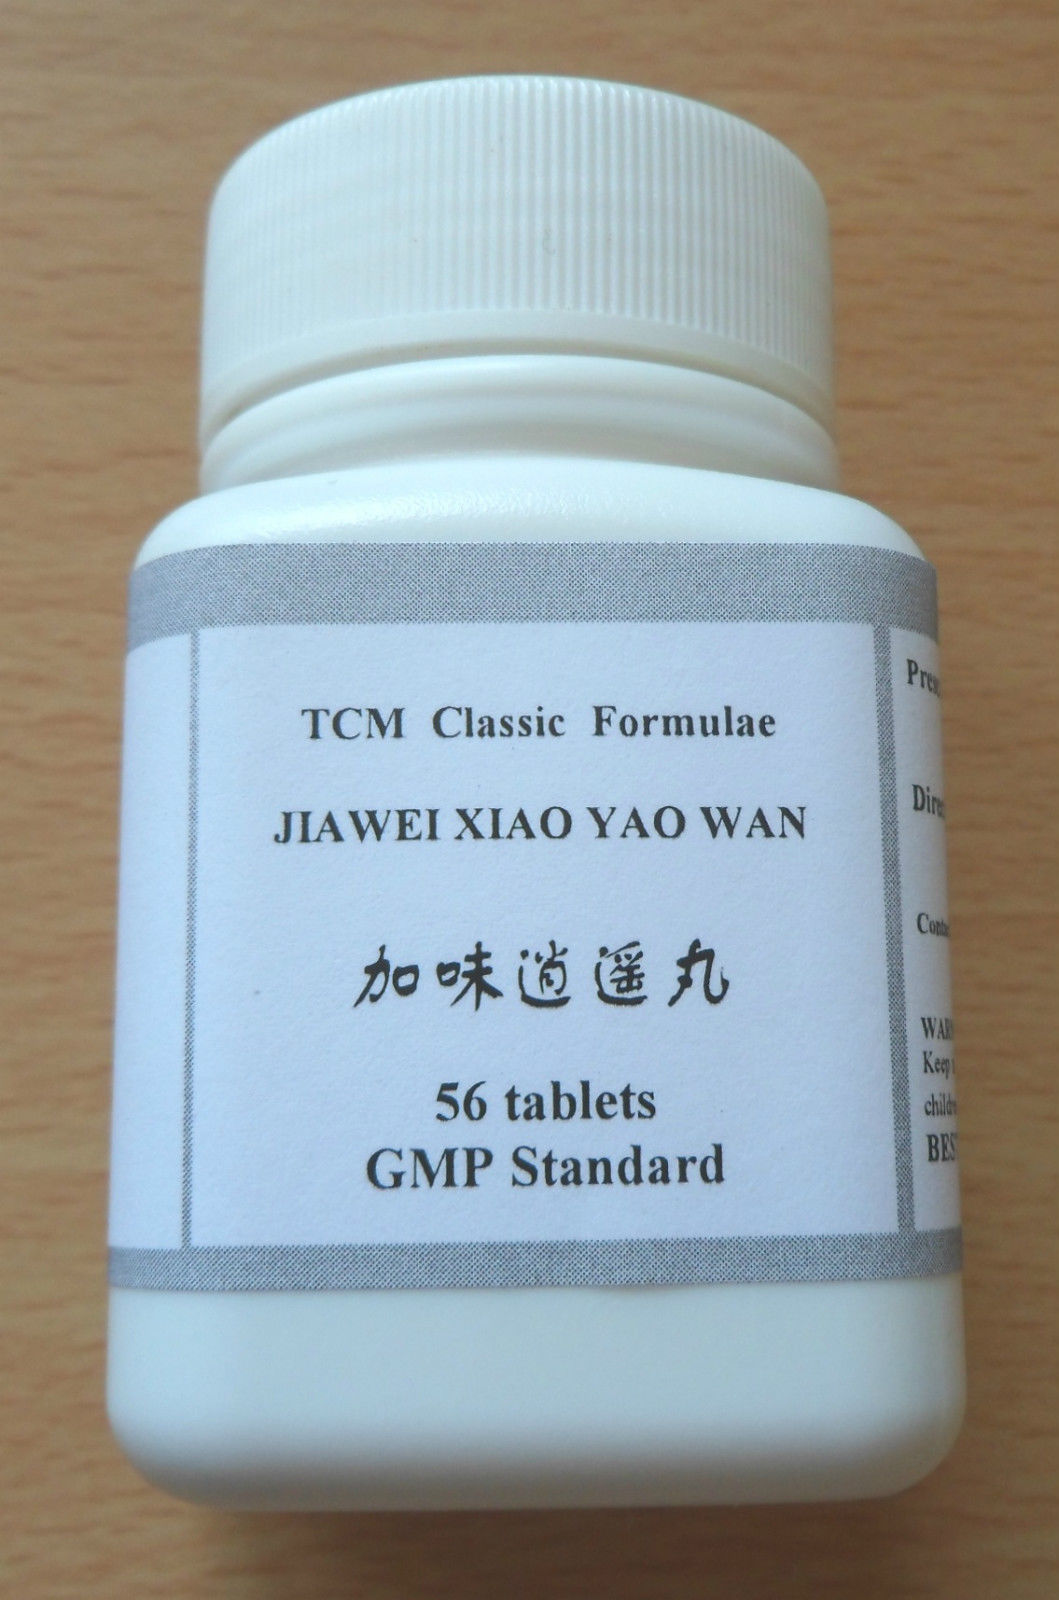 4 x Jia Wei Xiao Yao Wan Tablets, High Strength1:6